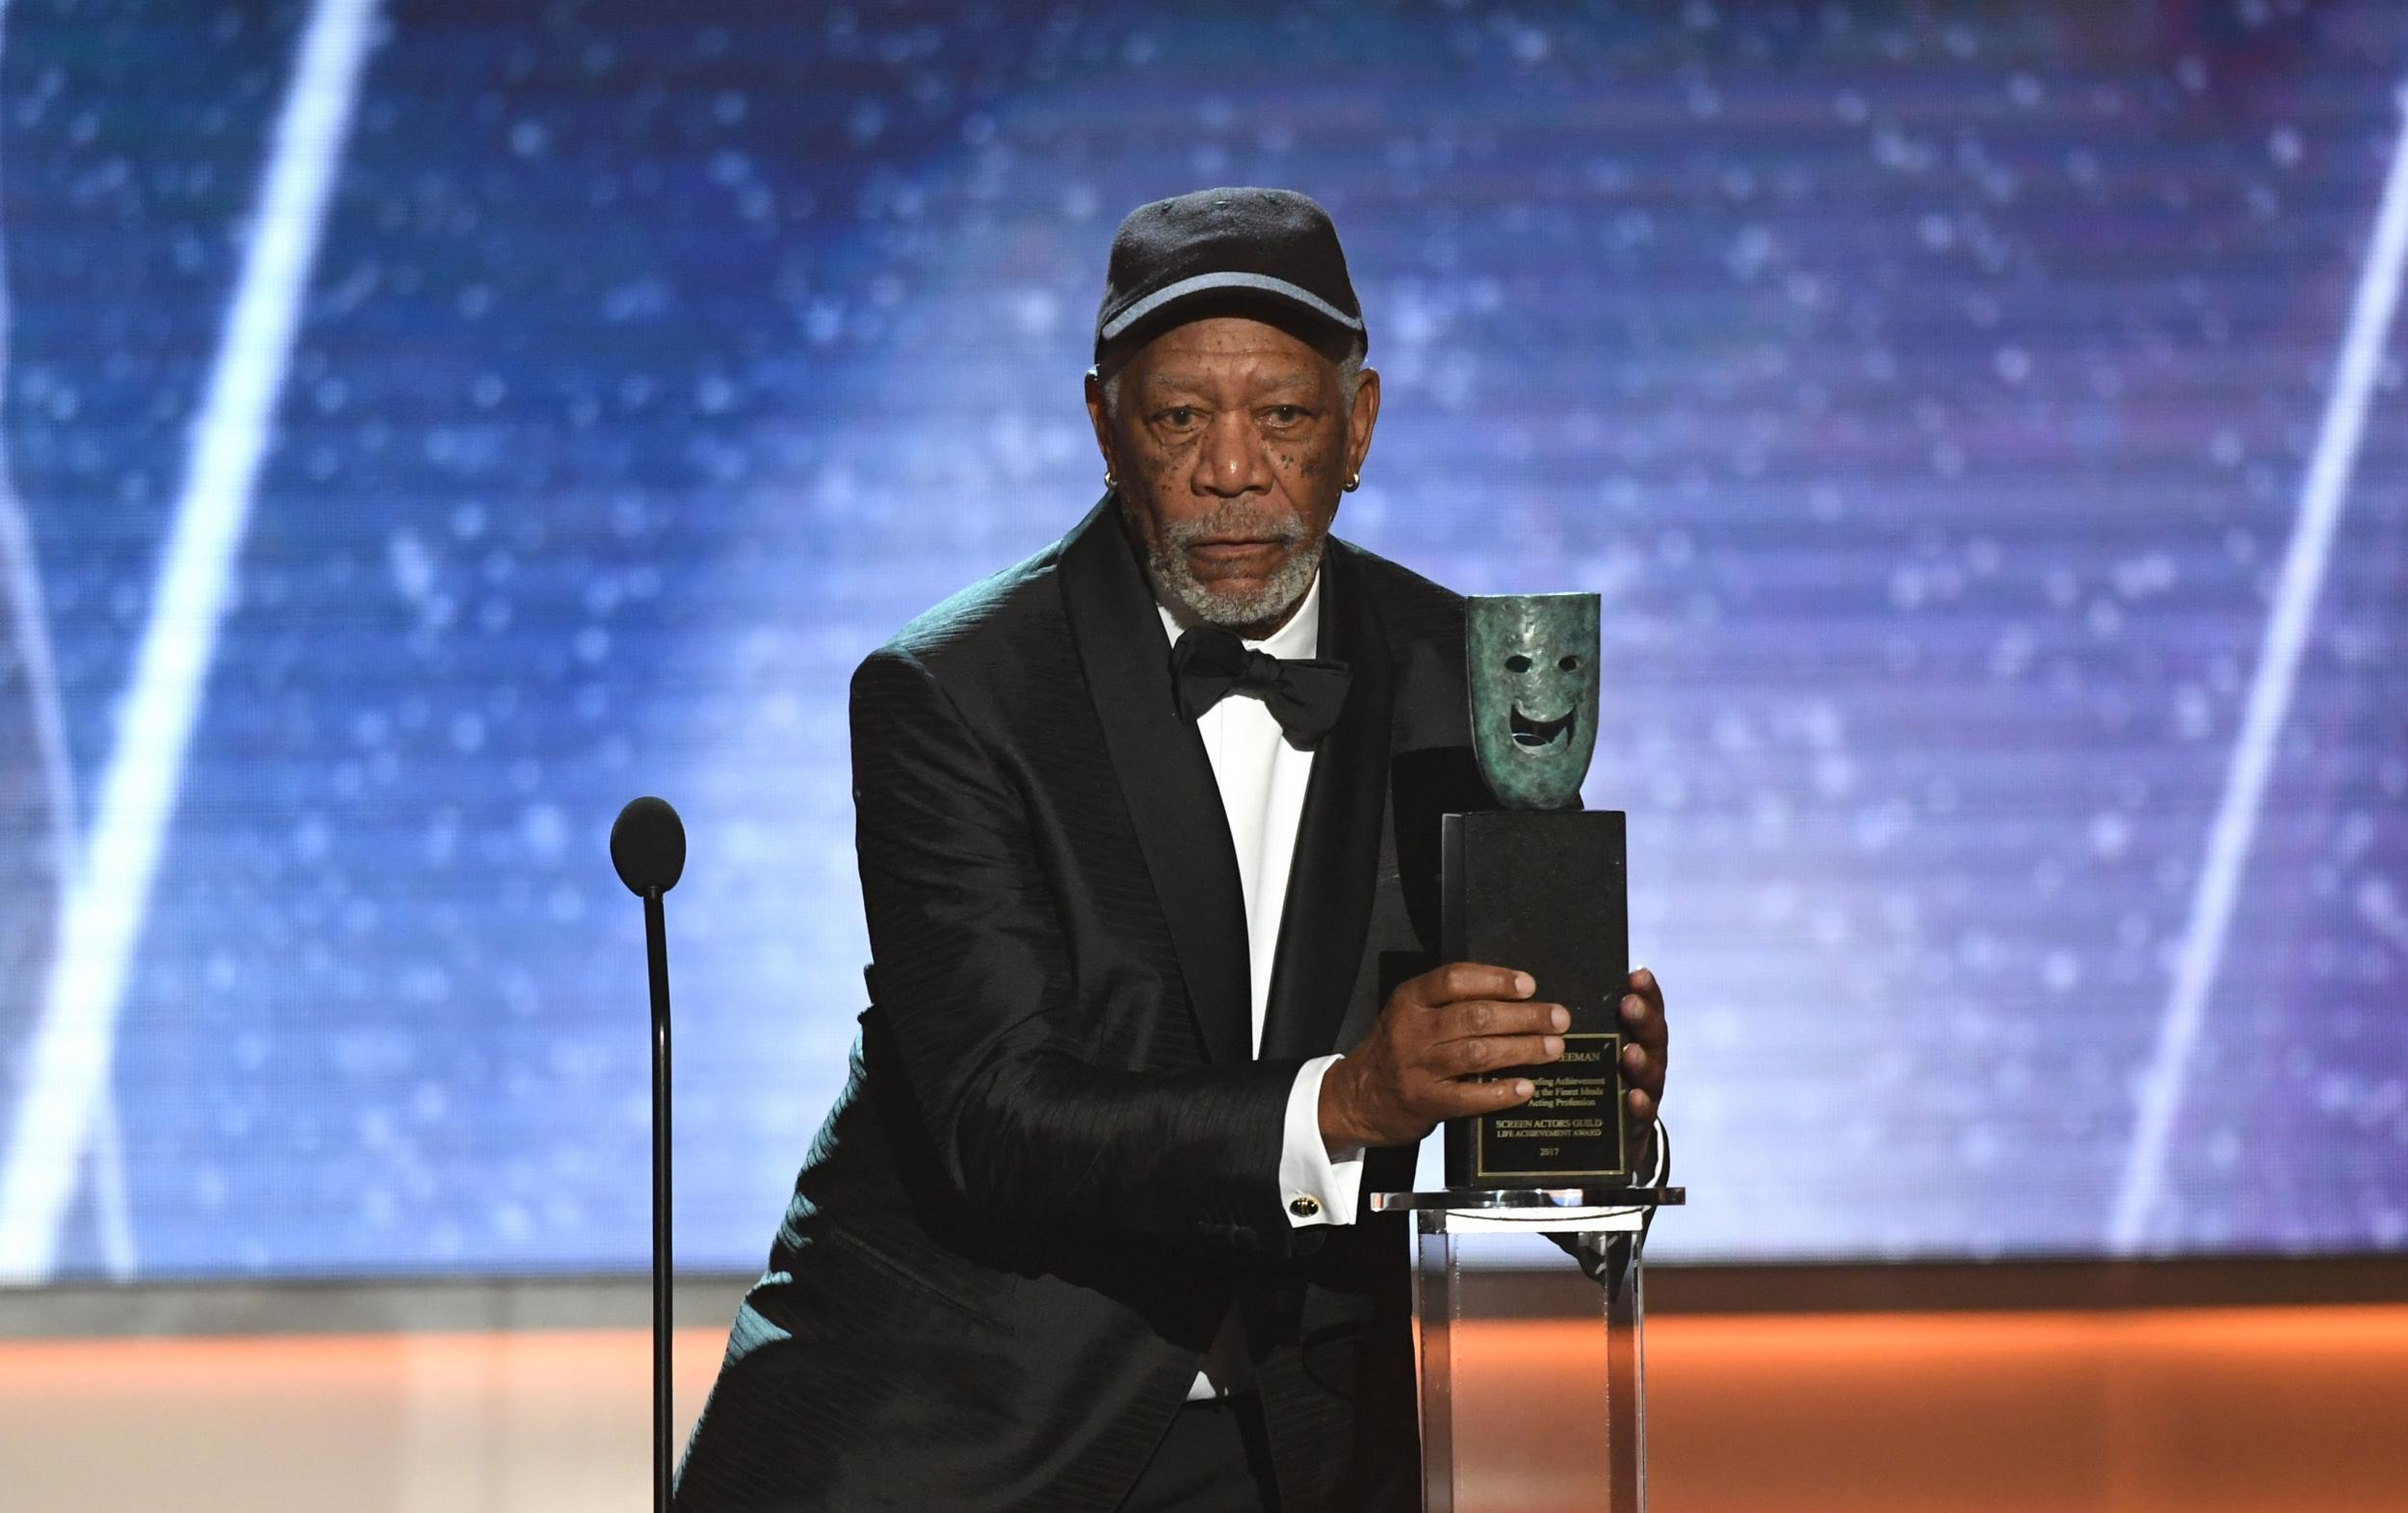 Morgan Freeman - latest news, breaking stories and comment